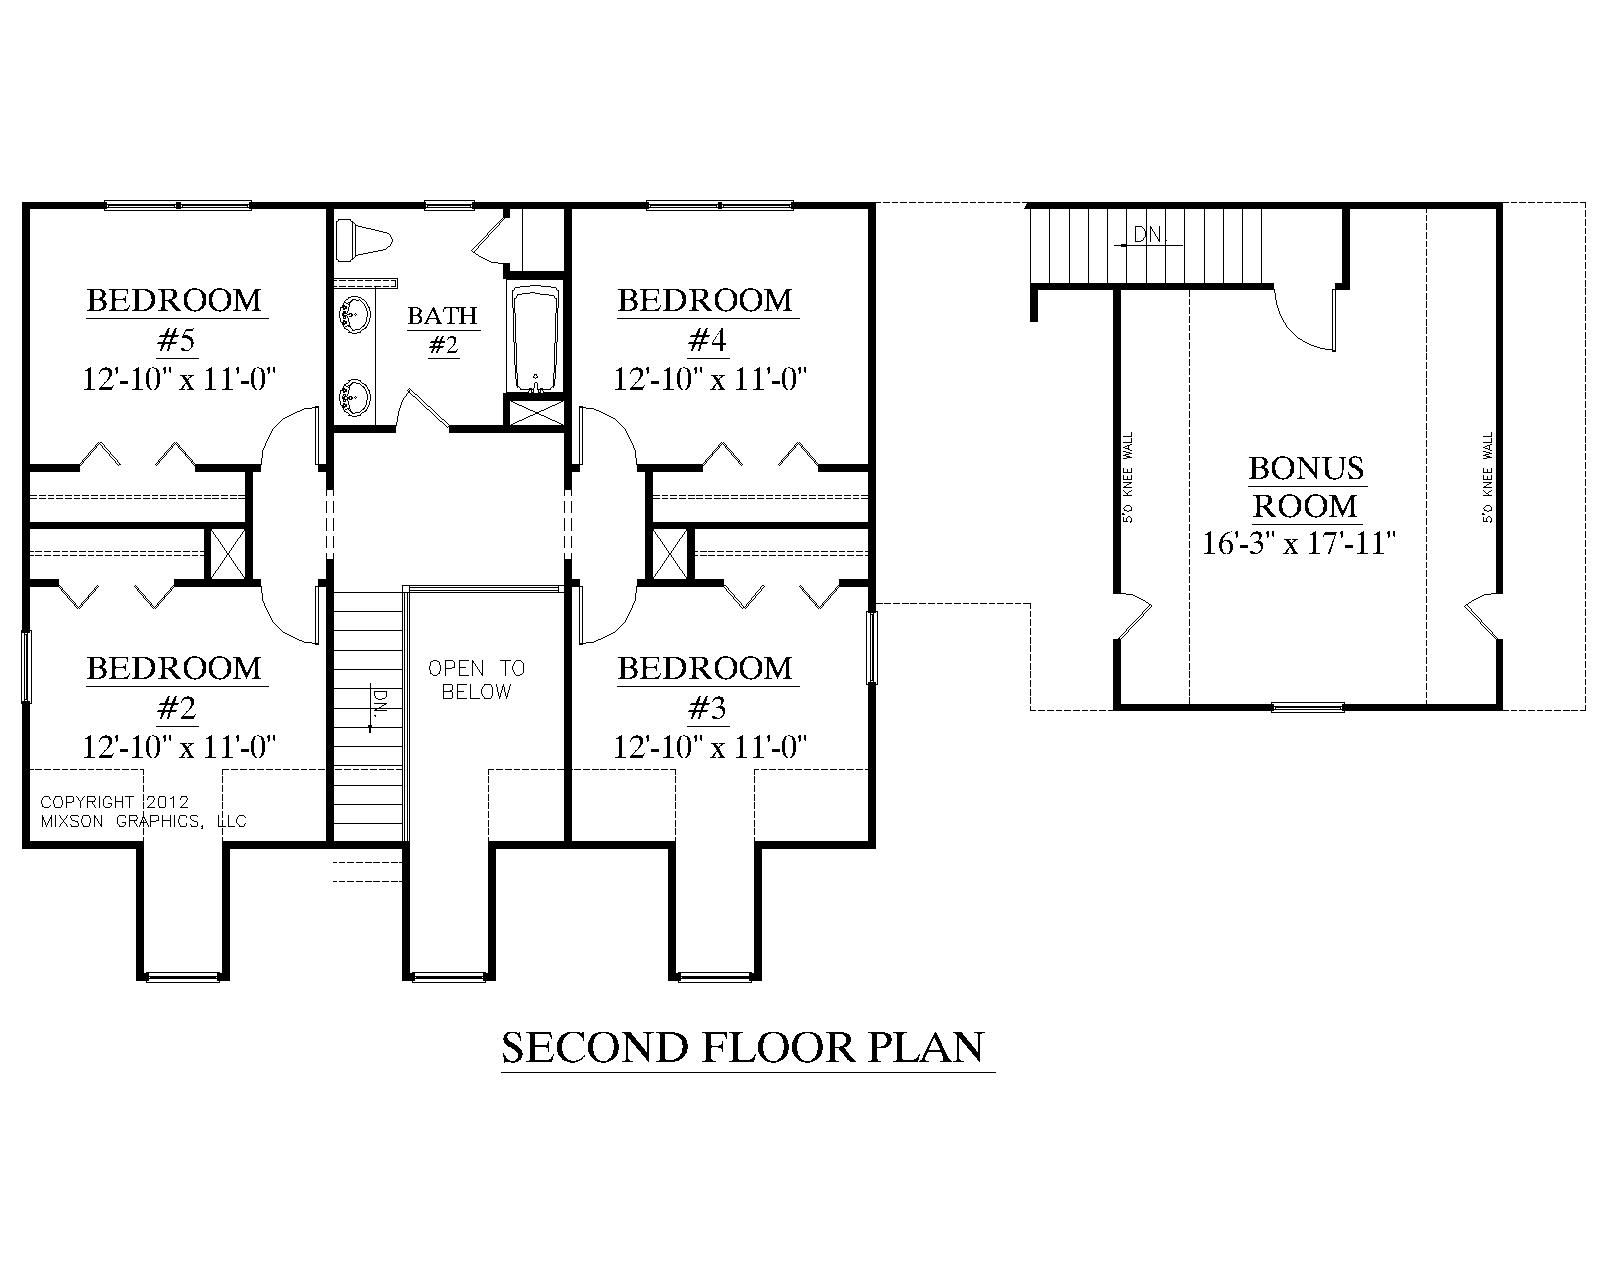 House plan 2341 a montgomery a second floor plan for Upstairs plans